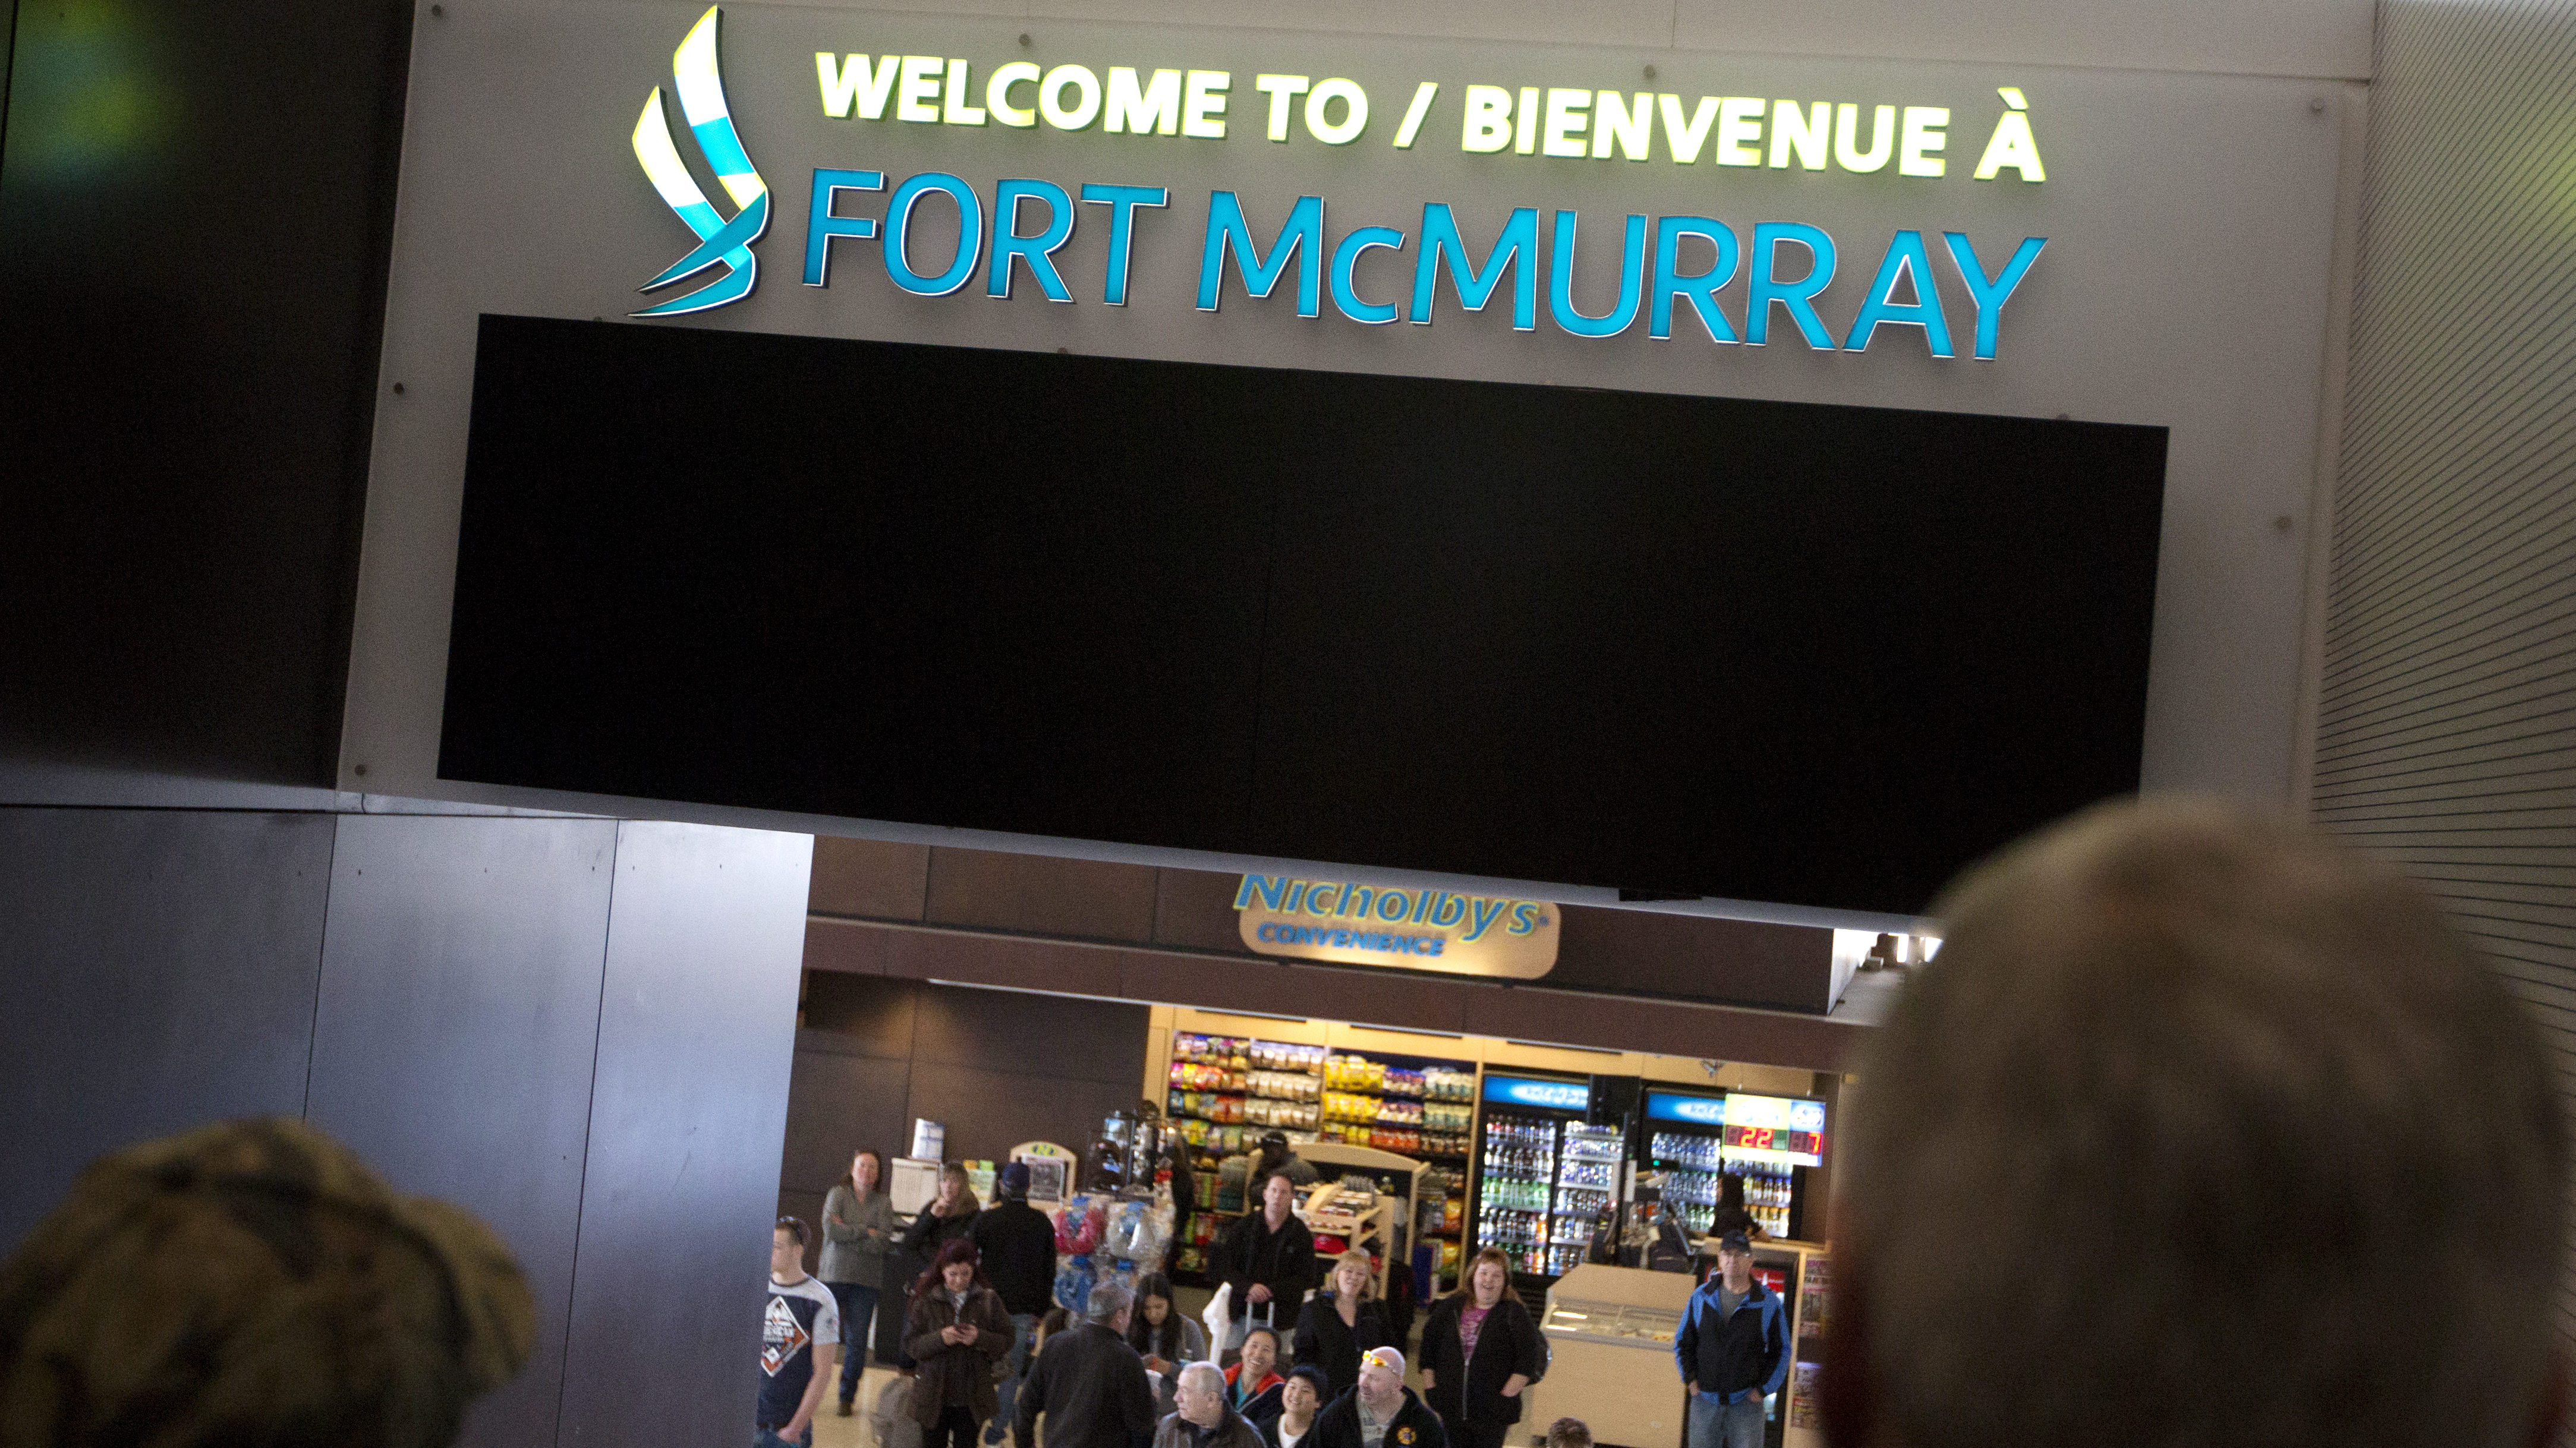 Oil sands city welcomes the world, embraces diversity